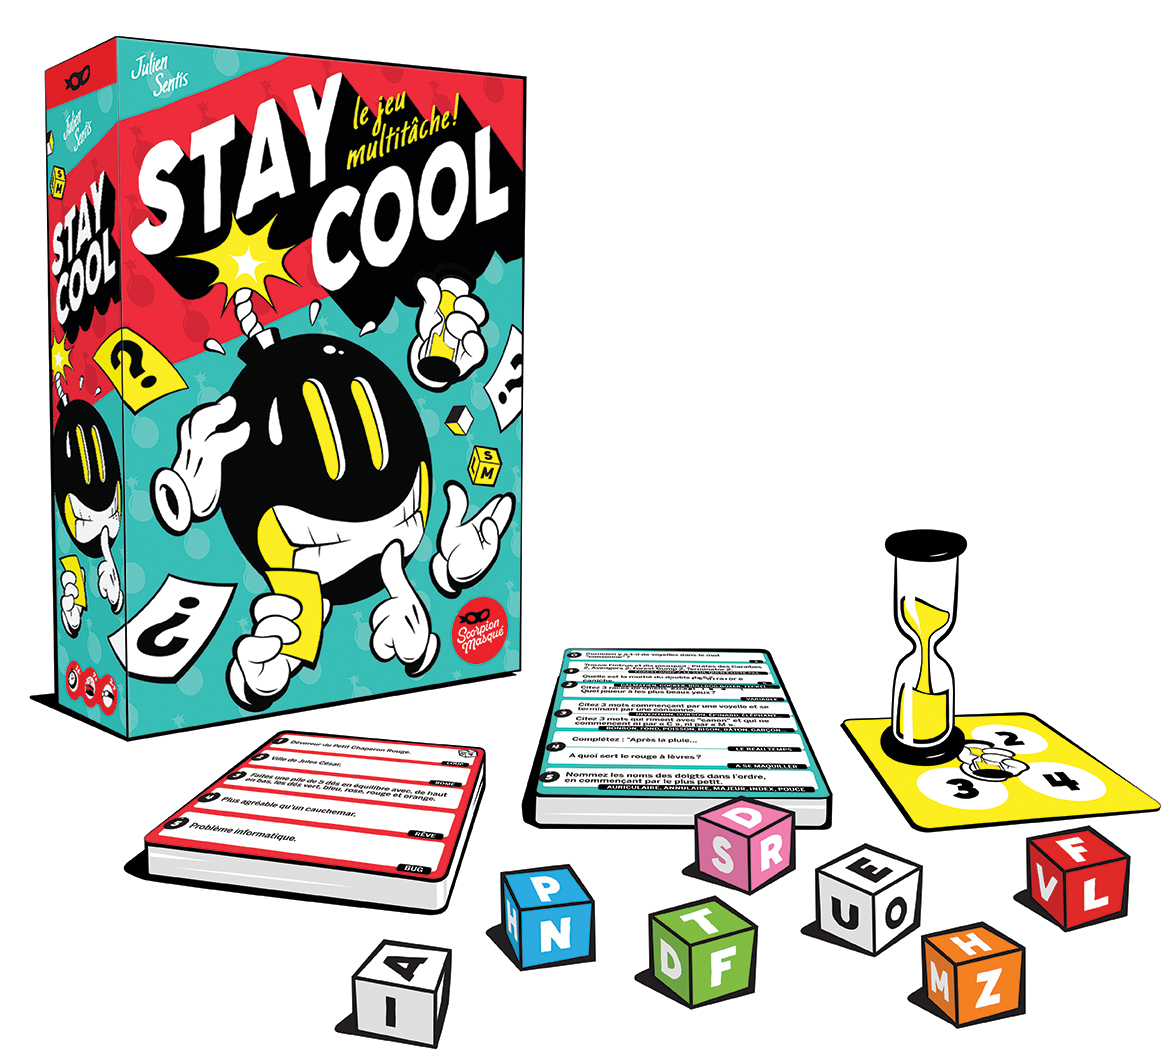 Stay cool [Le Scorpion Masqué]